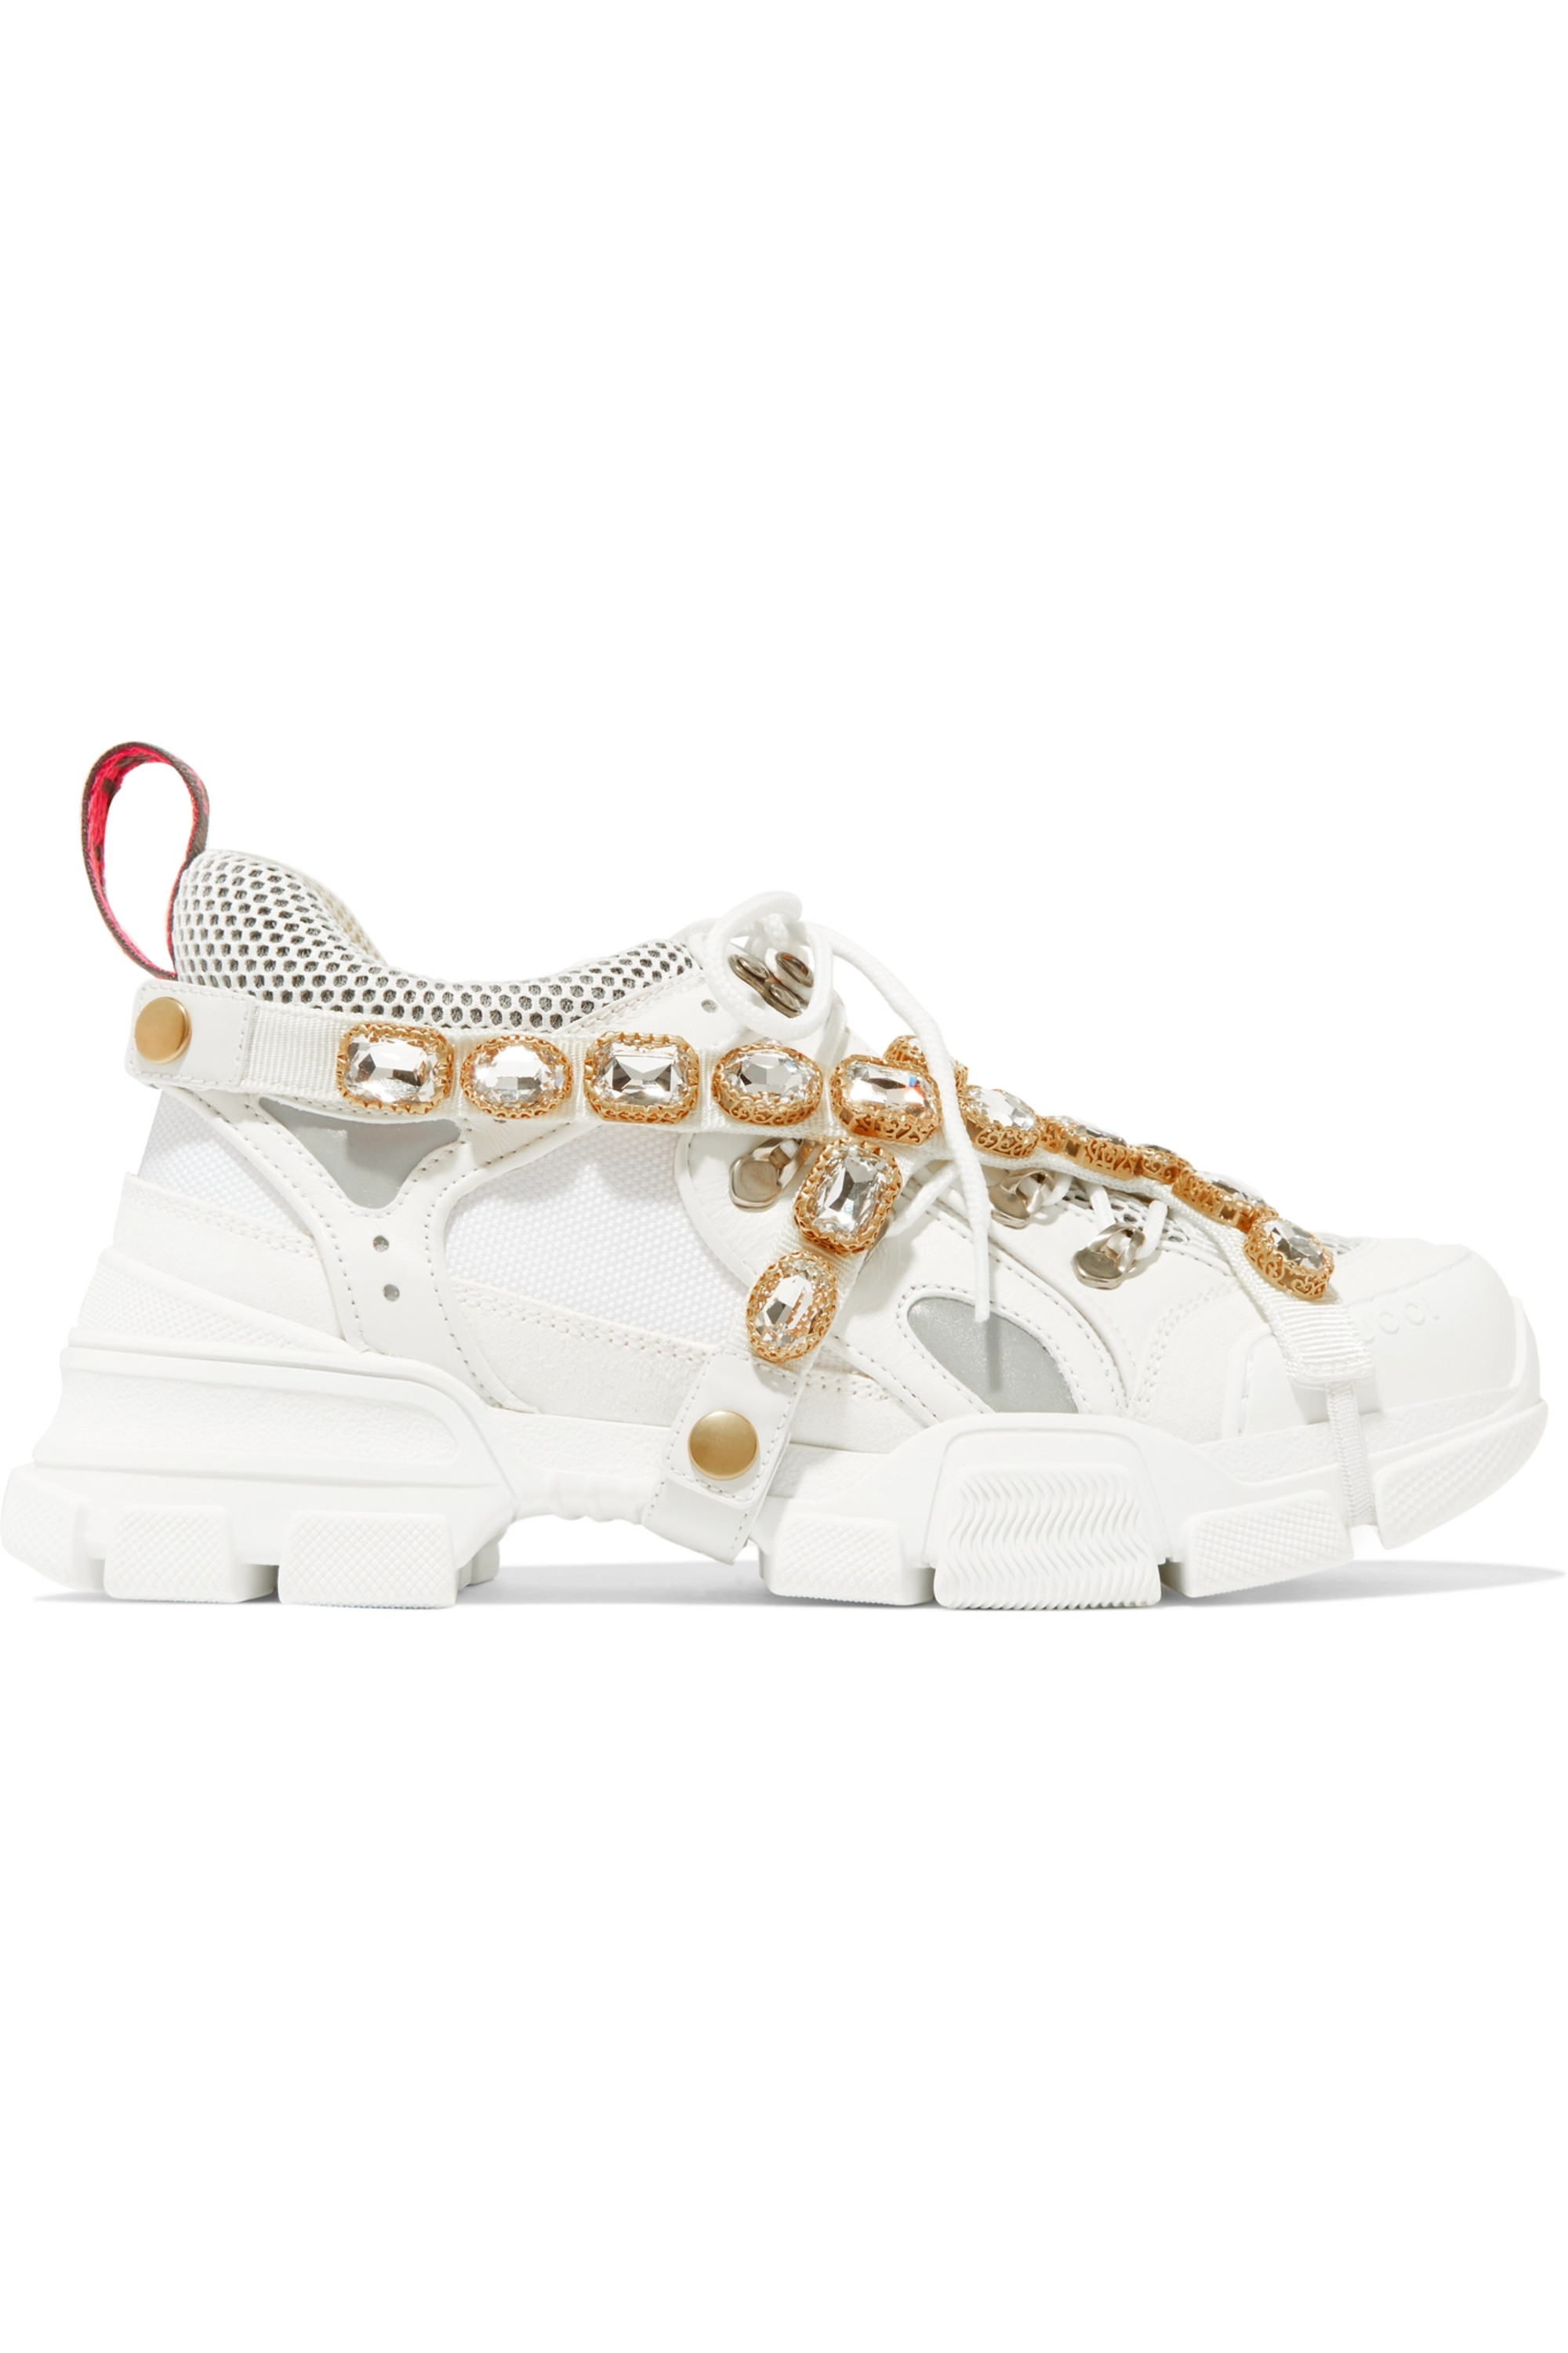 Gucci Flashtrek embellished logo-embossed leather, suede and mesh sneakers